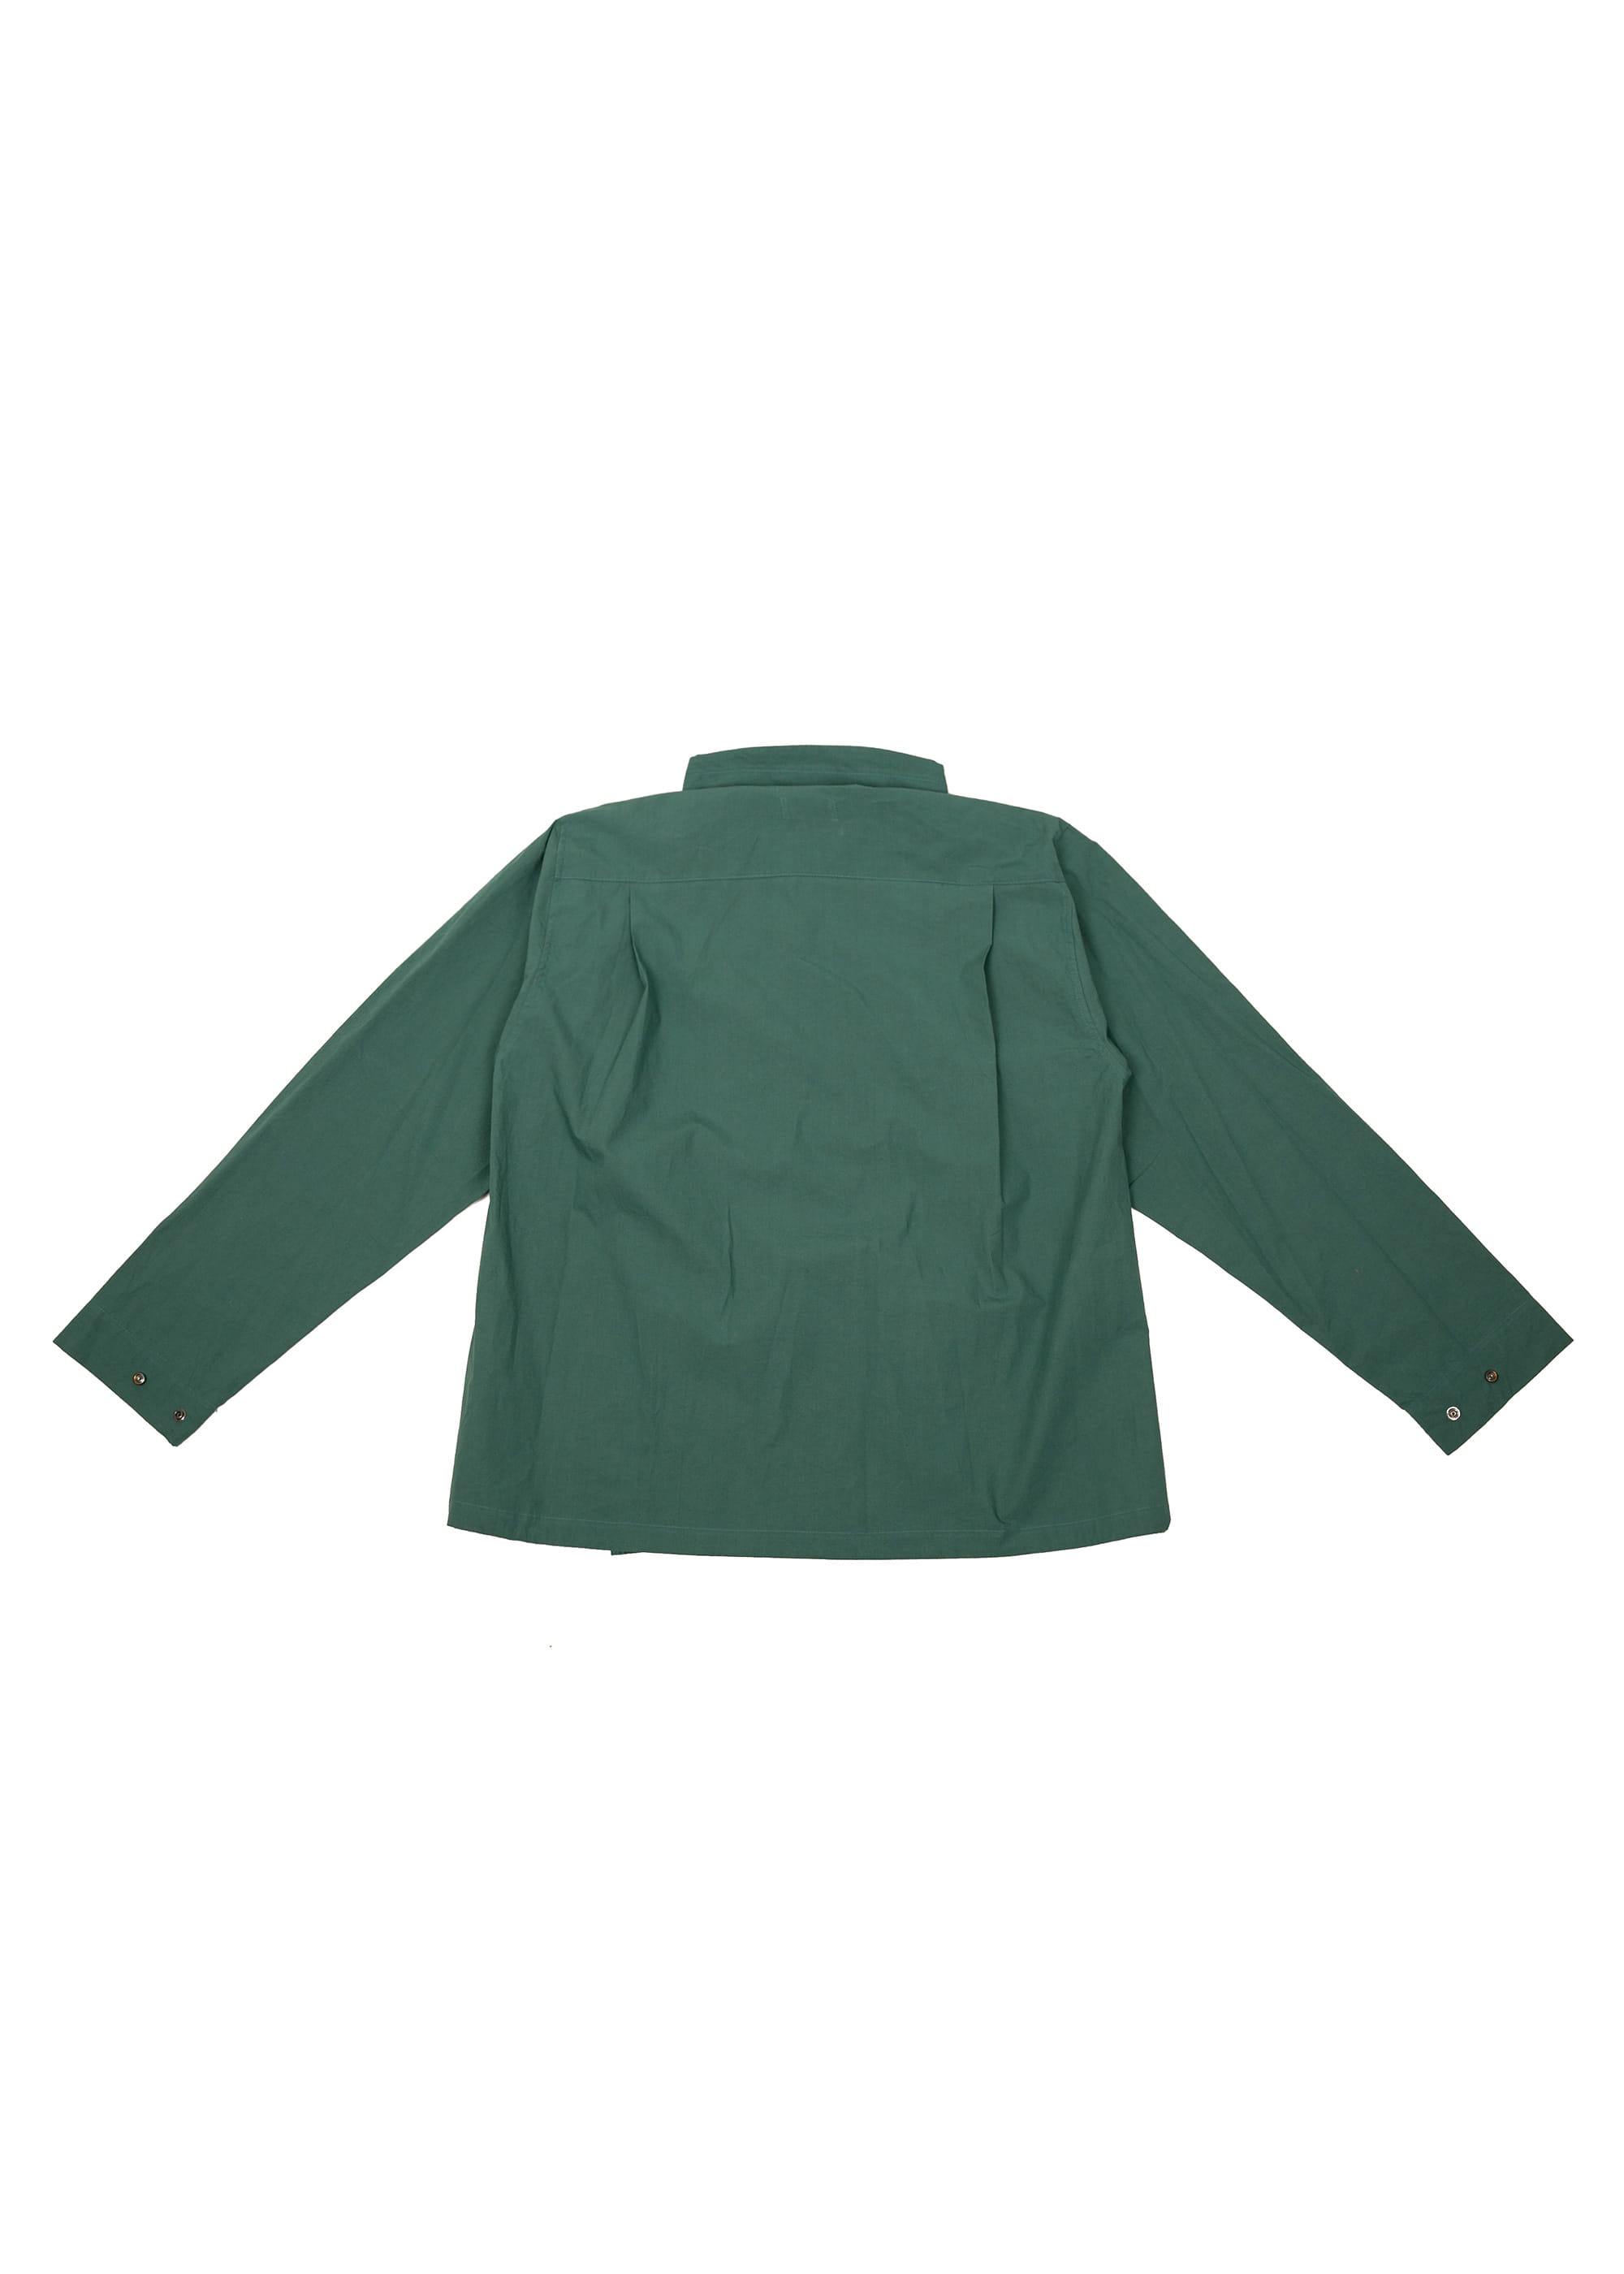 Neck String Shirts Jacket - Green